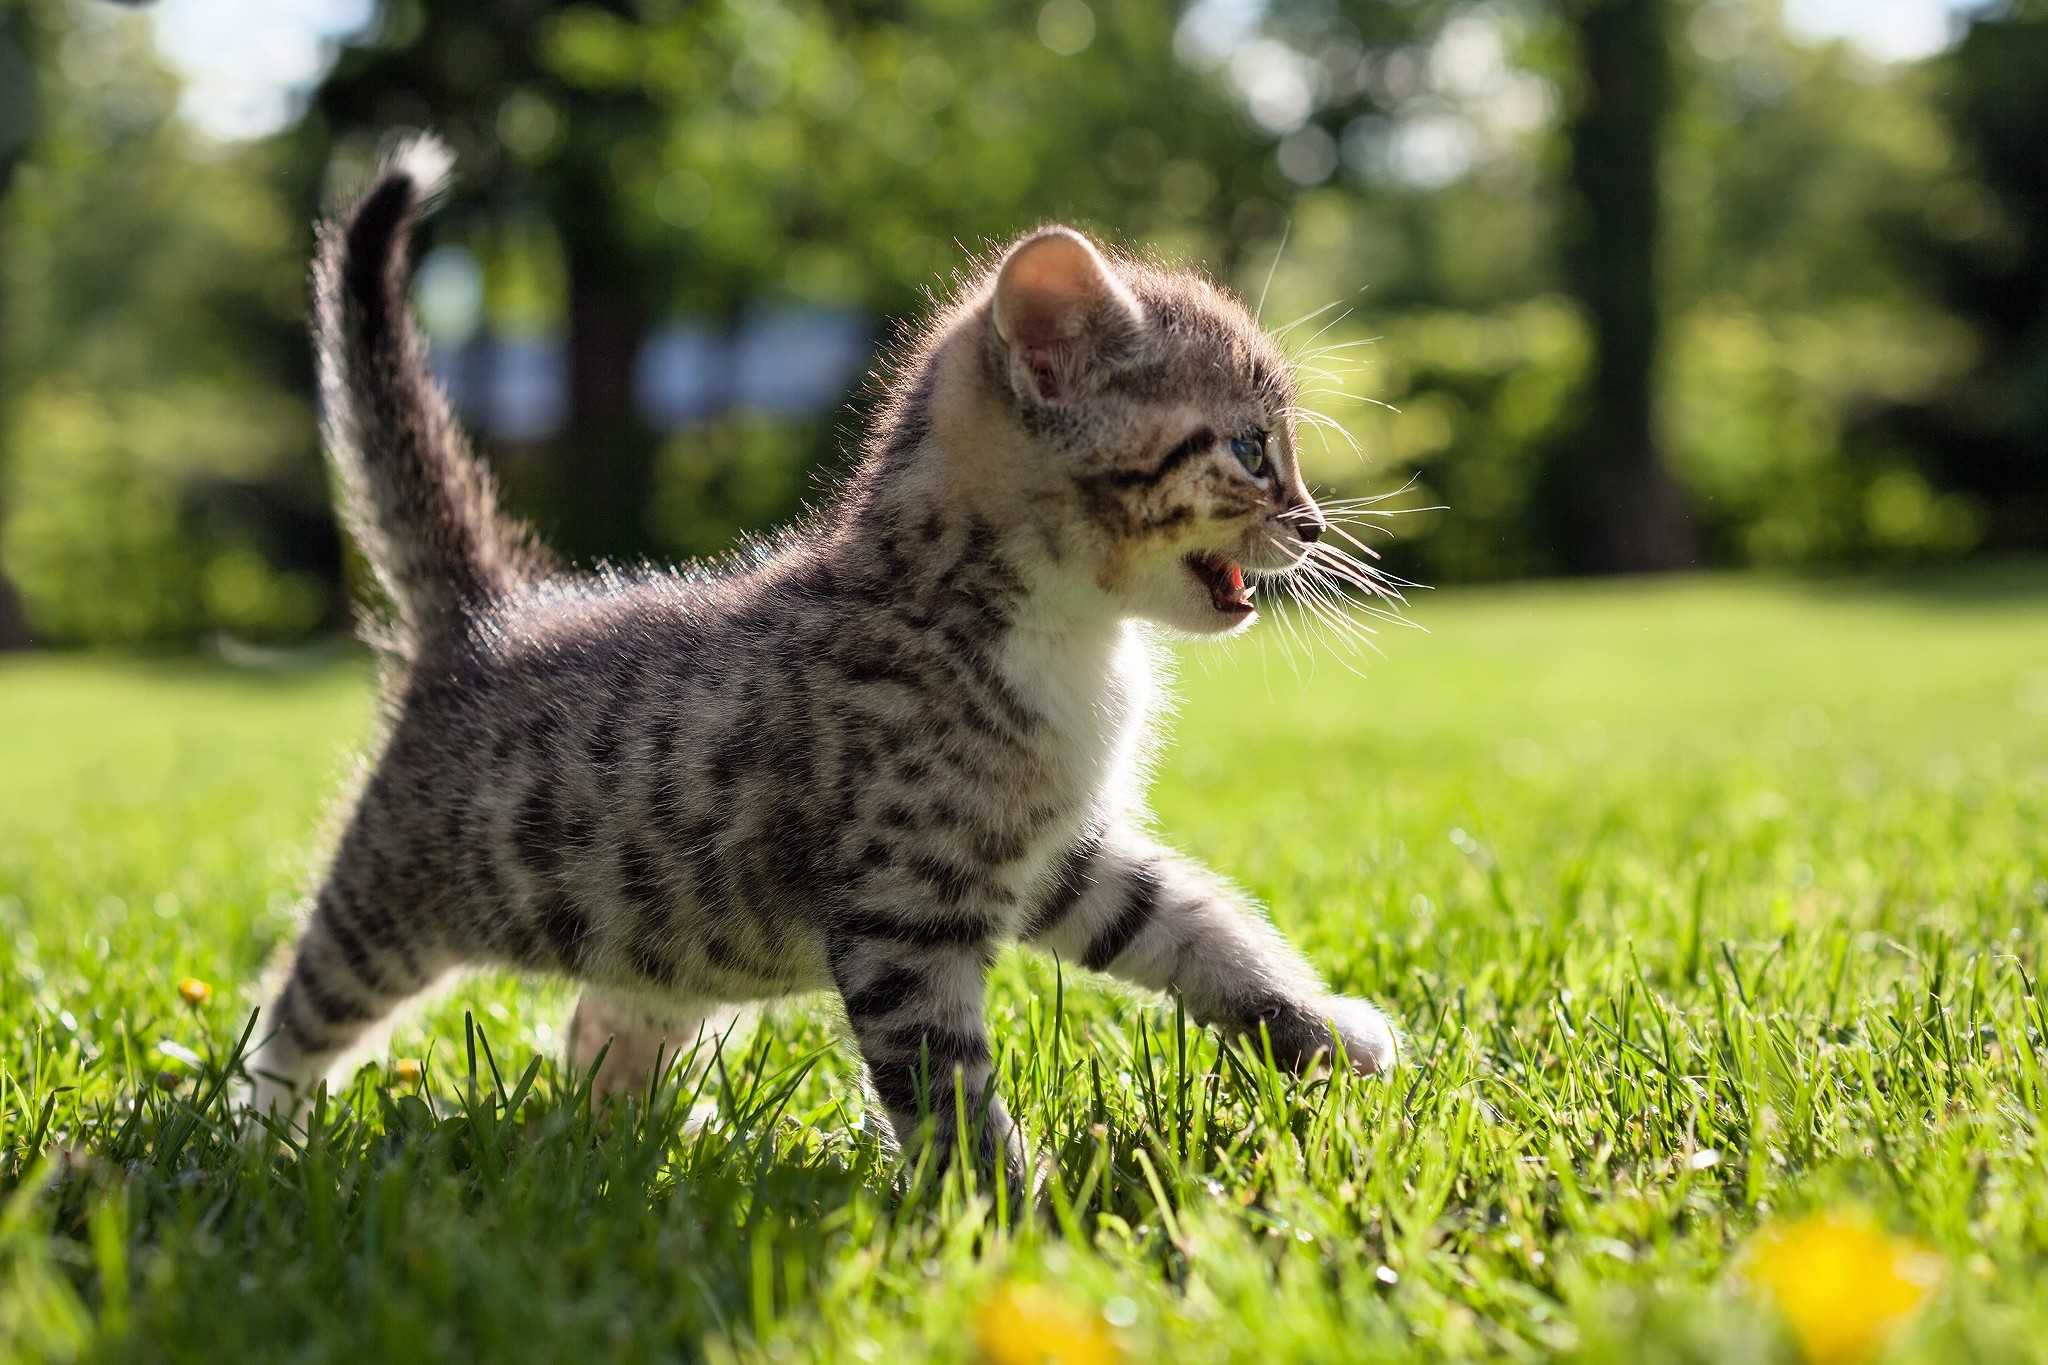 77870 Screensavers and Wallpapers Stroll for phone. Download Animals, Grass, Kitty, Kitten, Stroll, Kid, Tot pictures for free